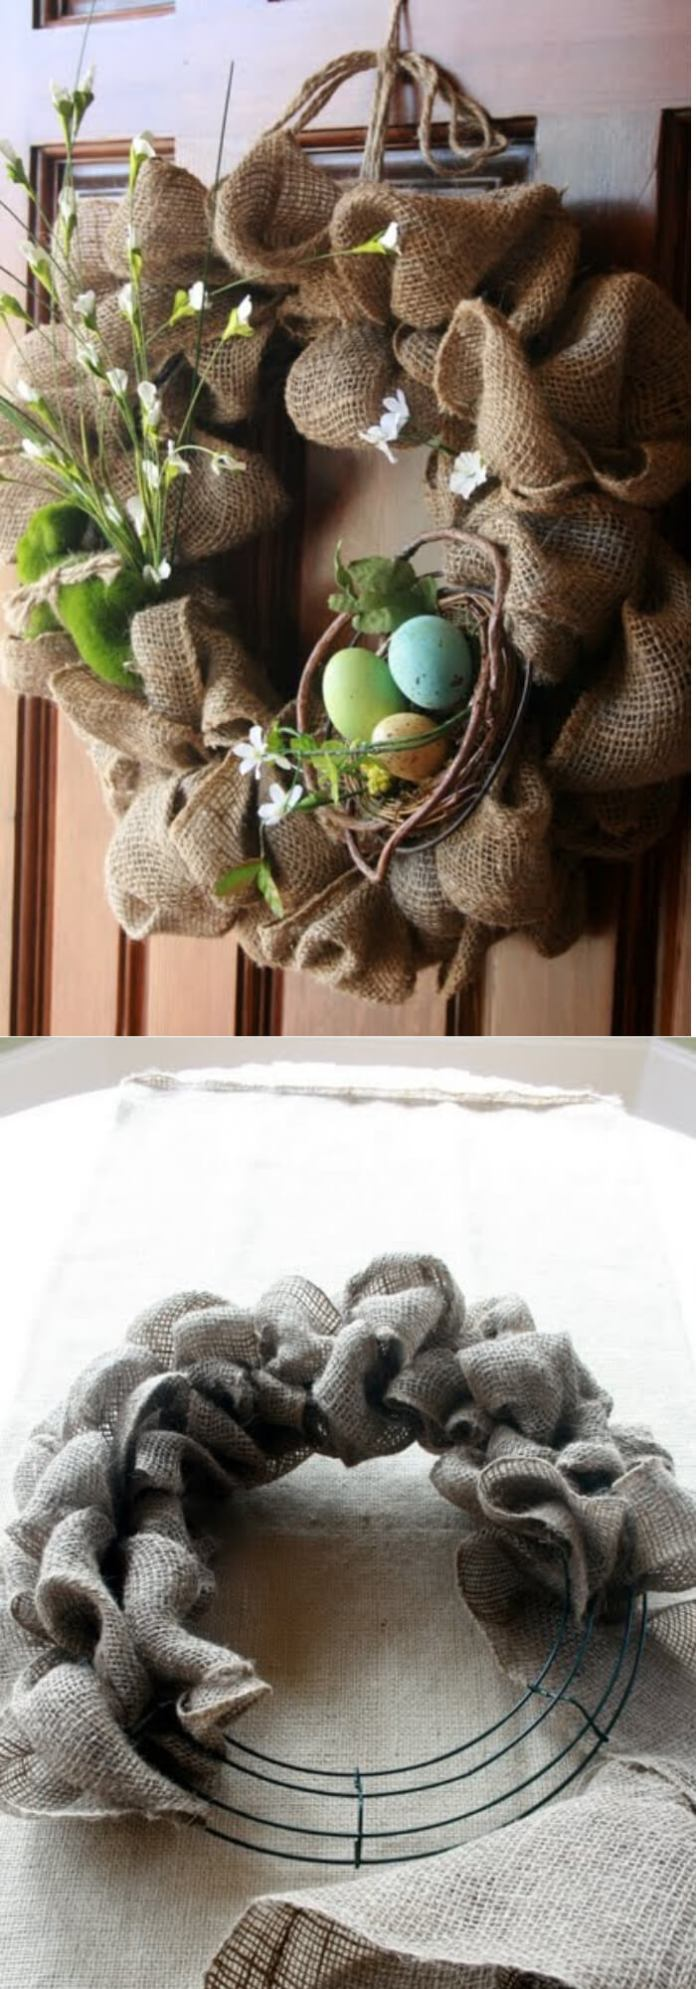 Easy and Simple DIY Spring Wreath Ideas | Easy burlap spring wreath